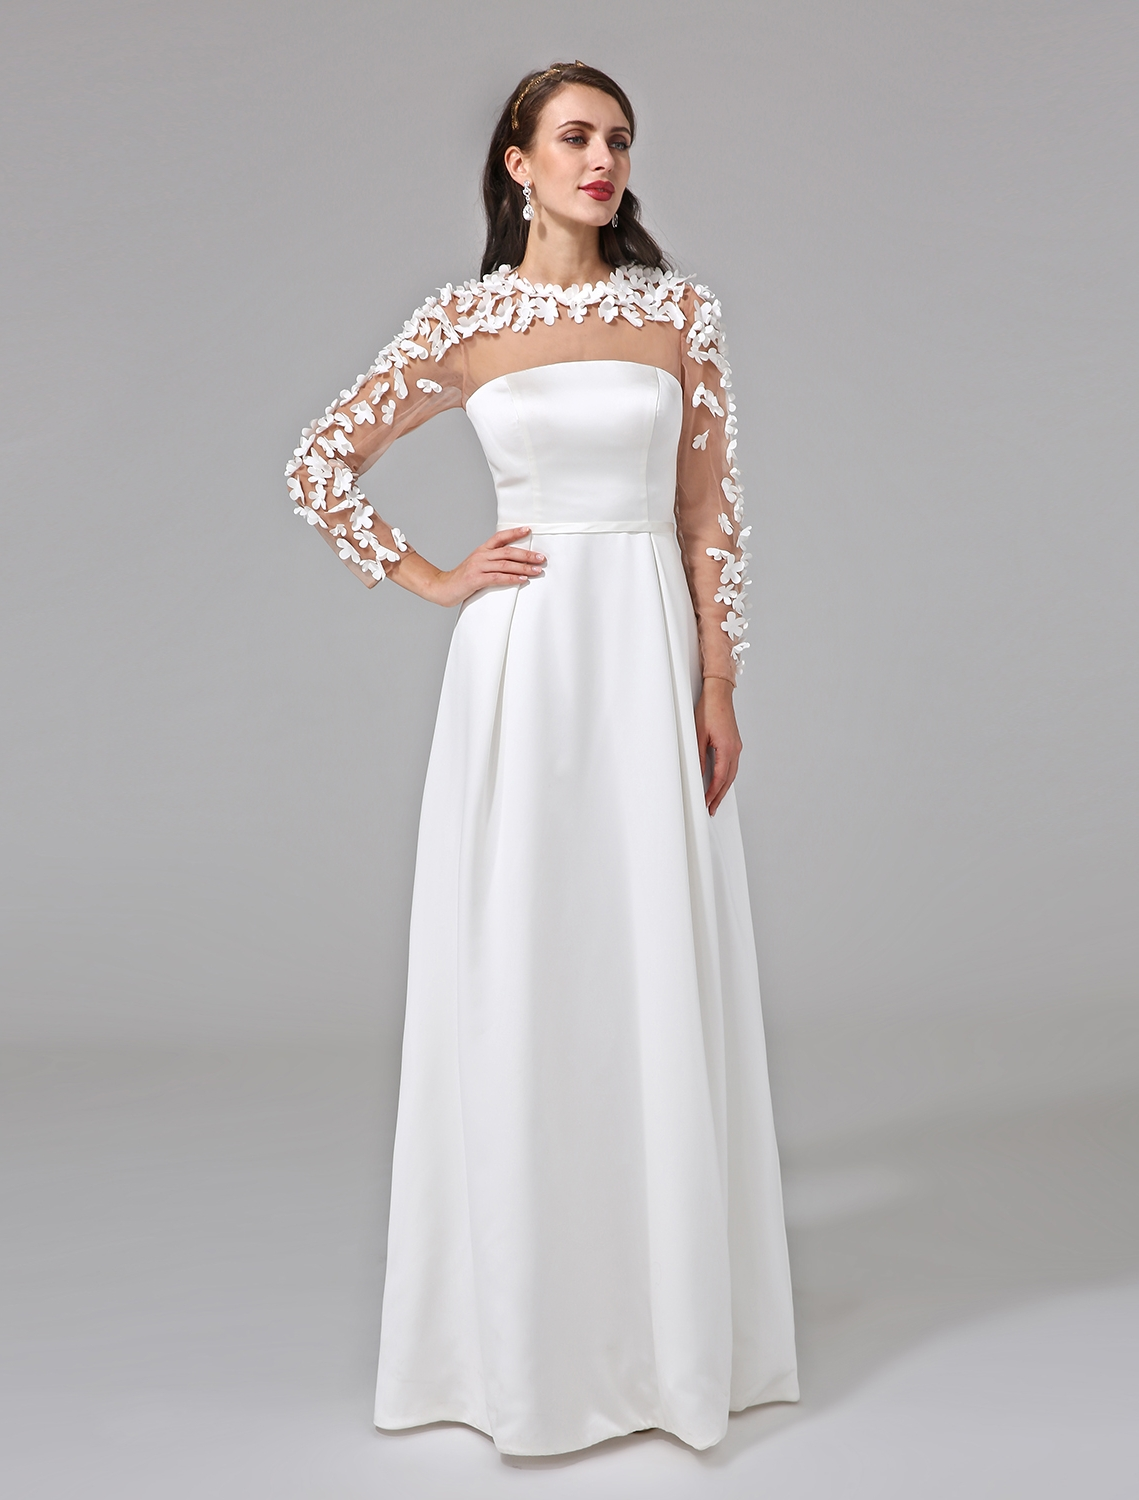 LAN TING BRIDE Illusion A-Line Wedding Dress Long Sleeves Charmeuse Bridal  Gown with Sashes Ribbon Button Flower f9ac897c2e92